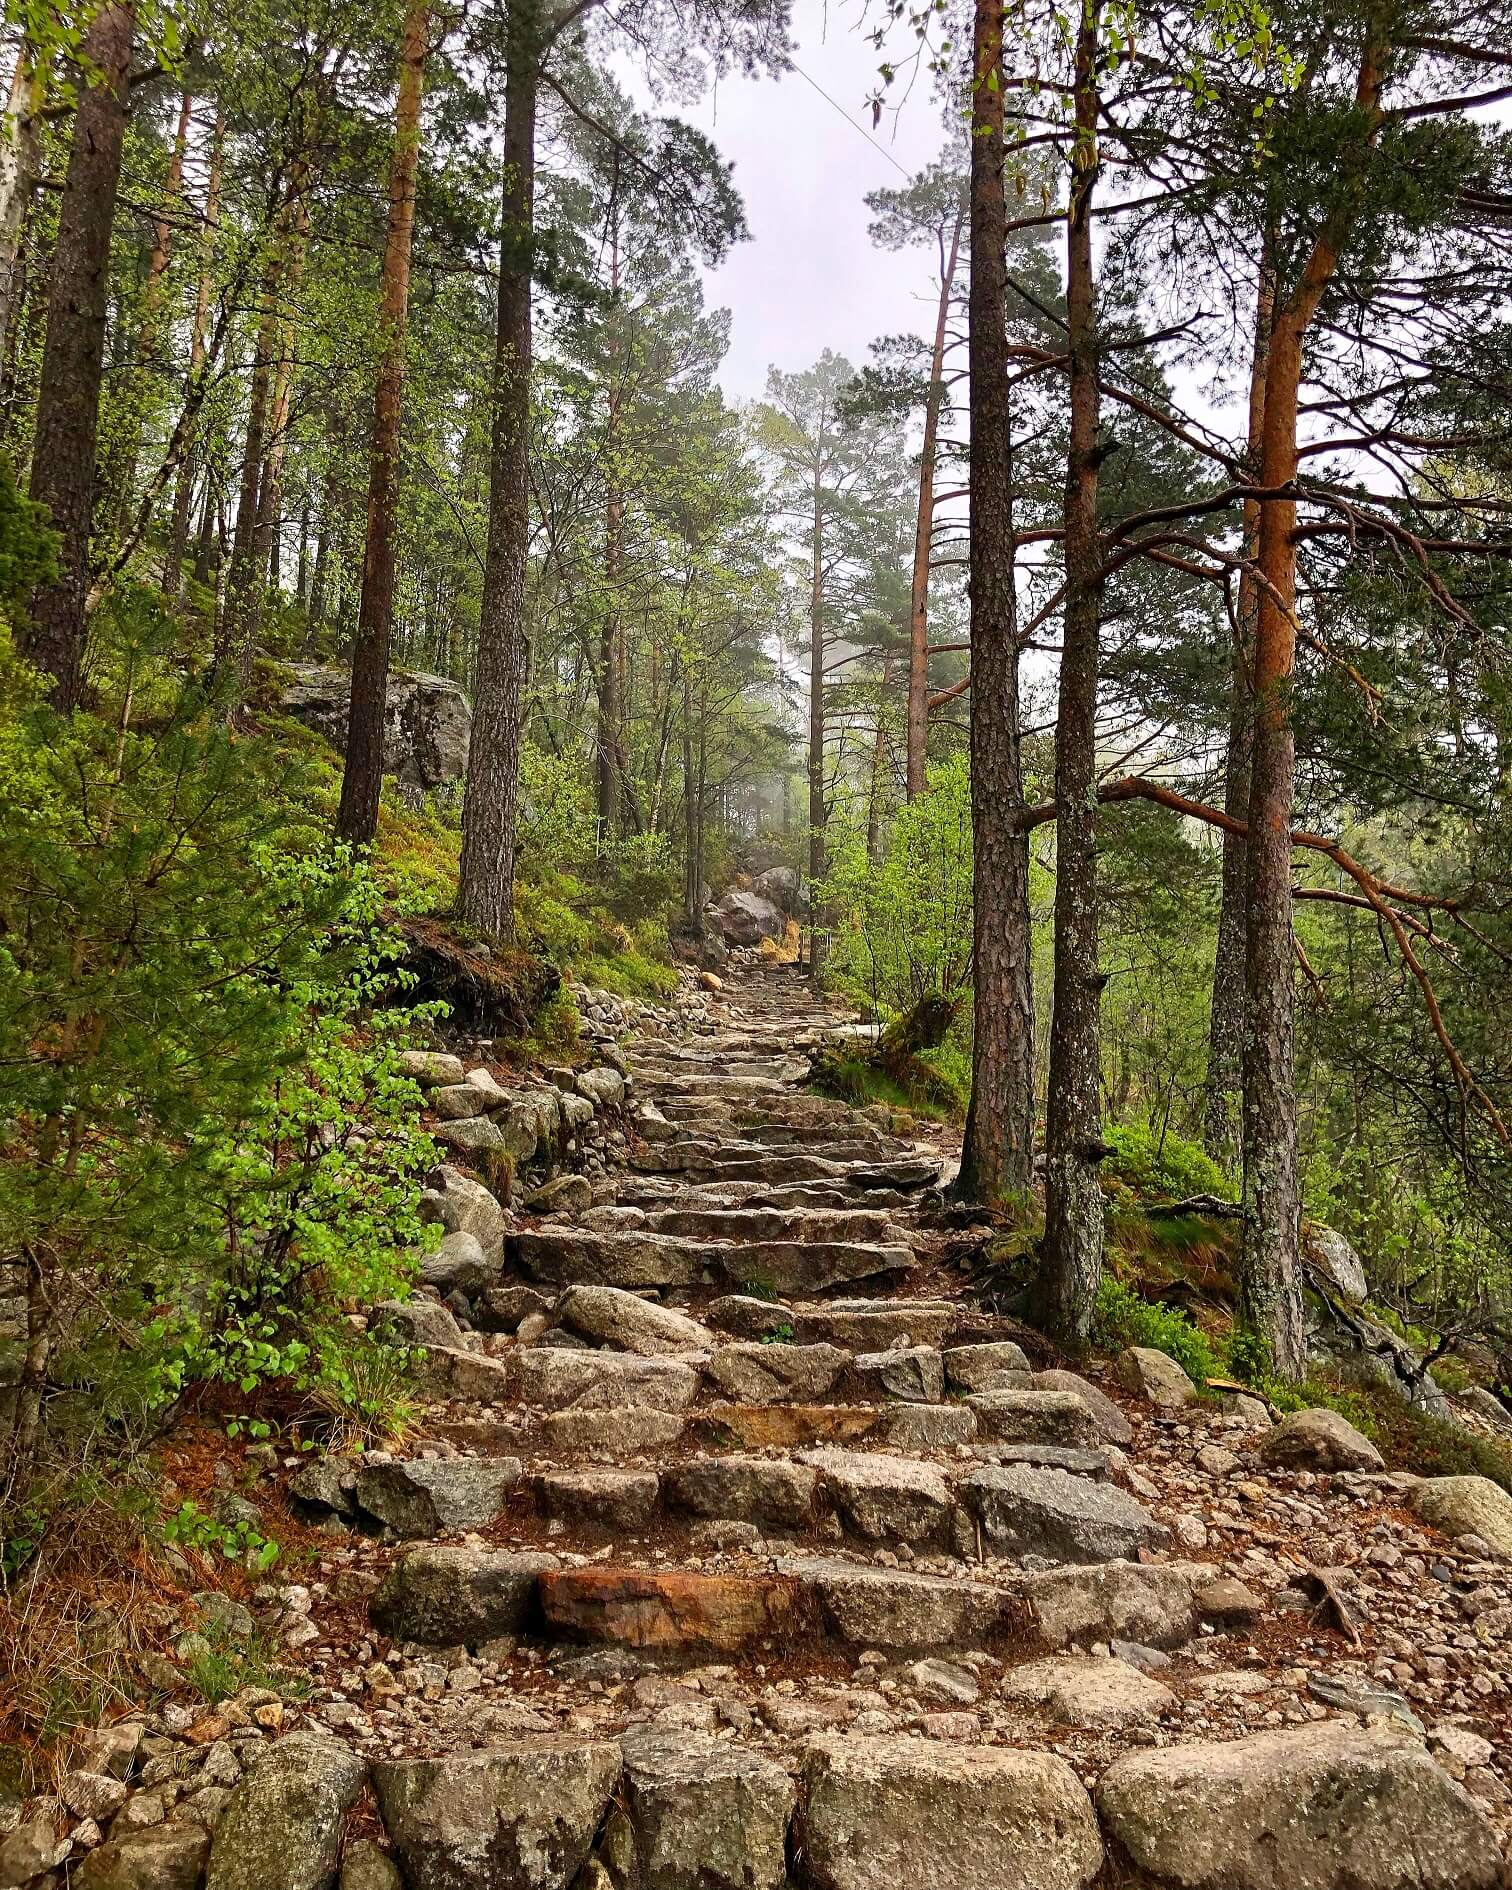 Norway: Guide to hiking Preikestolen (Pulpit Rock) in bad weather